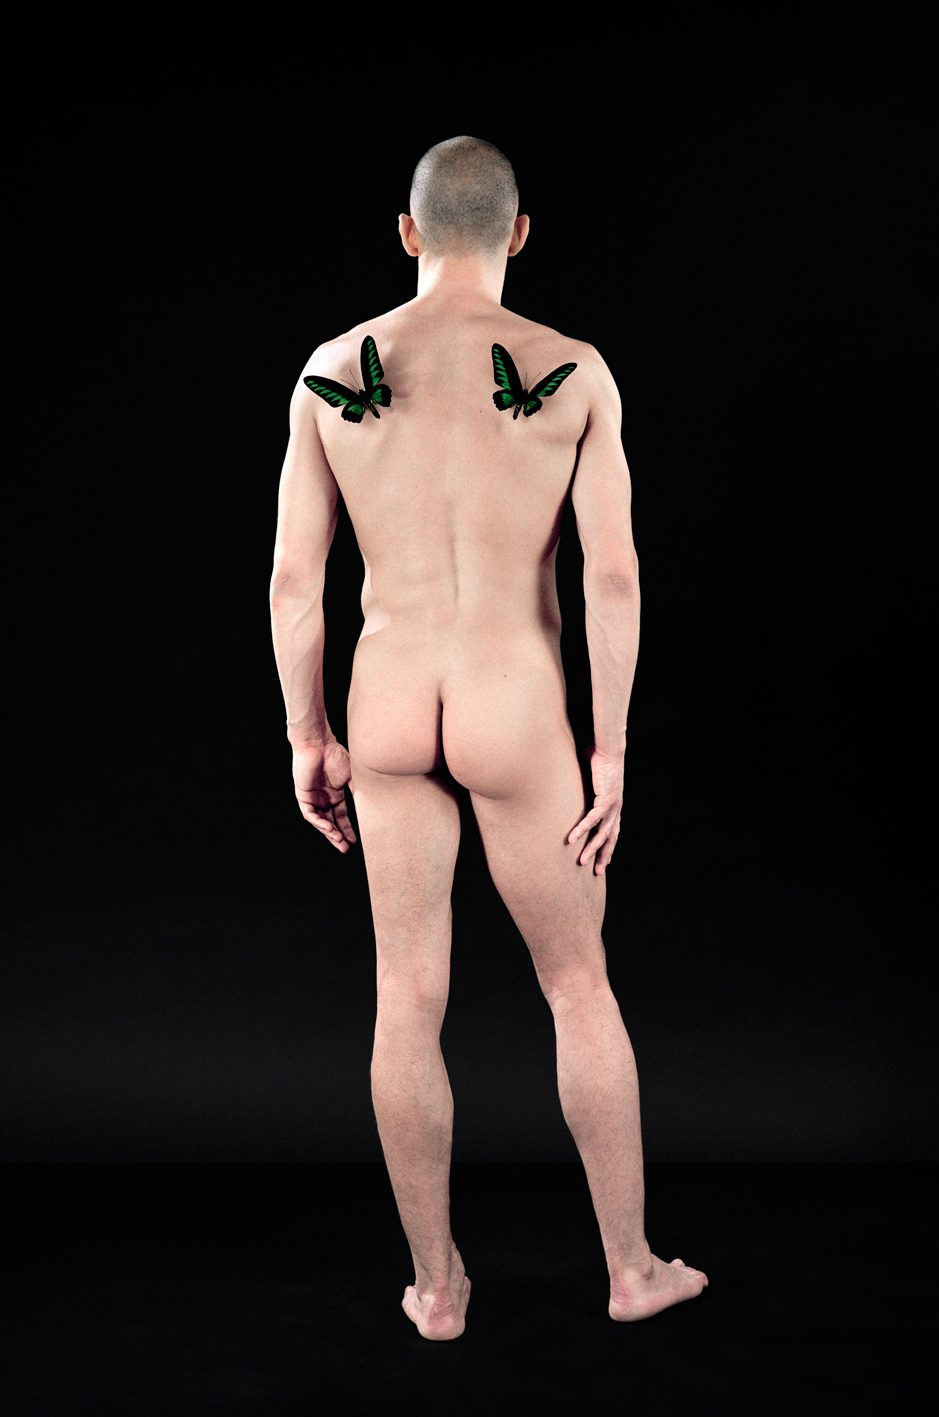 Untitled, For a Definition of The Nude Series (Man w/ Butterflies)